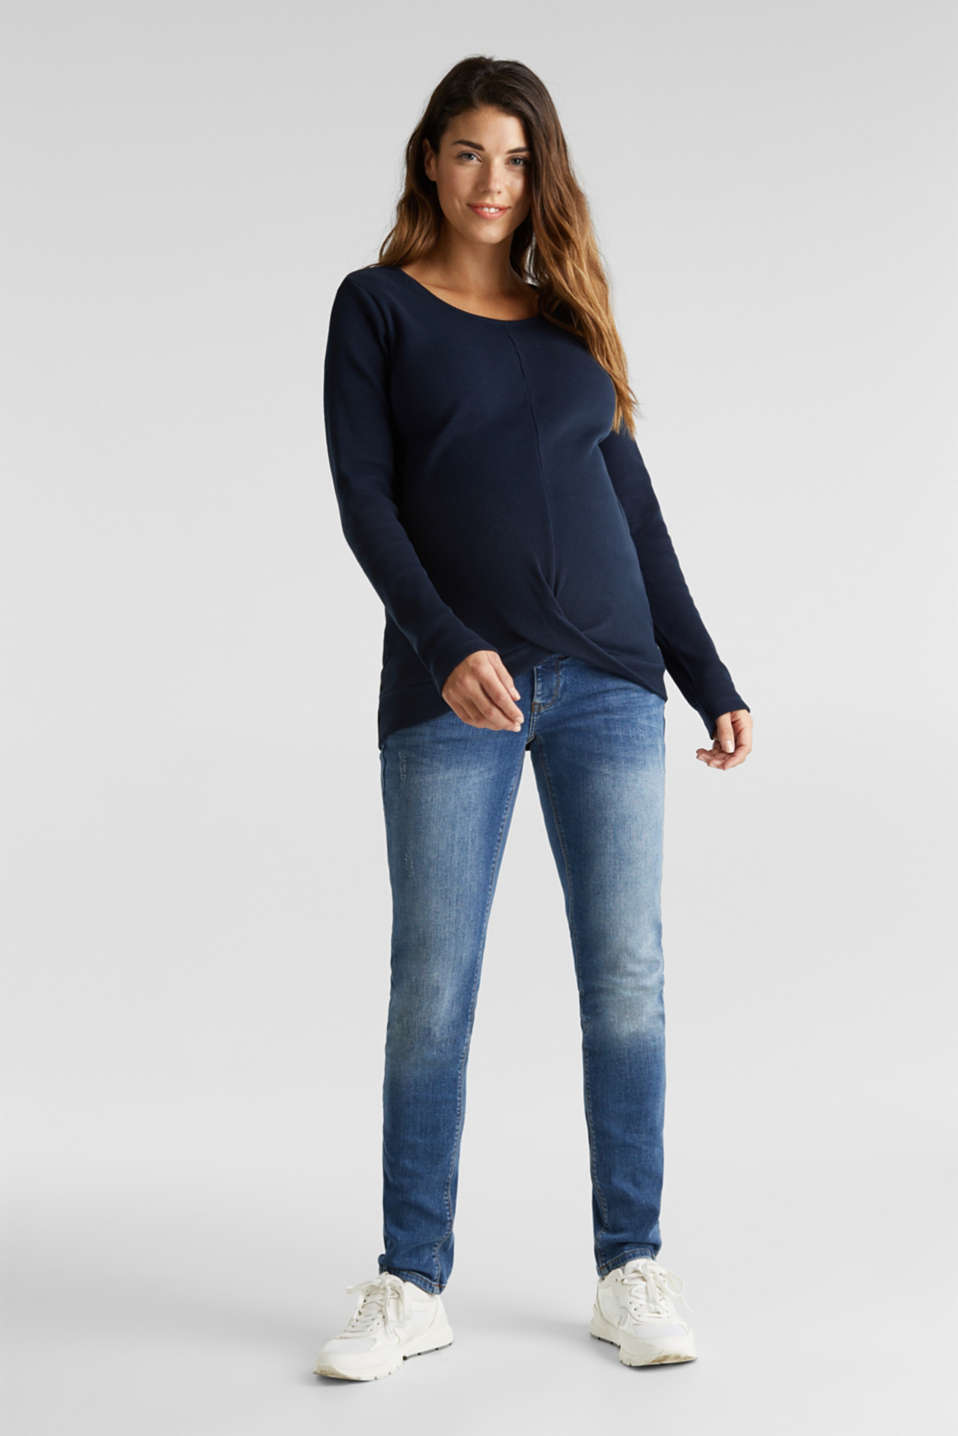 Piqué long sleeve top with a draped effect, 100% cotton, LCNIGHT BLUE, detail image number 1